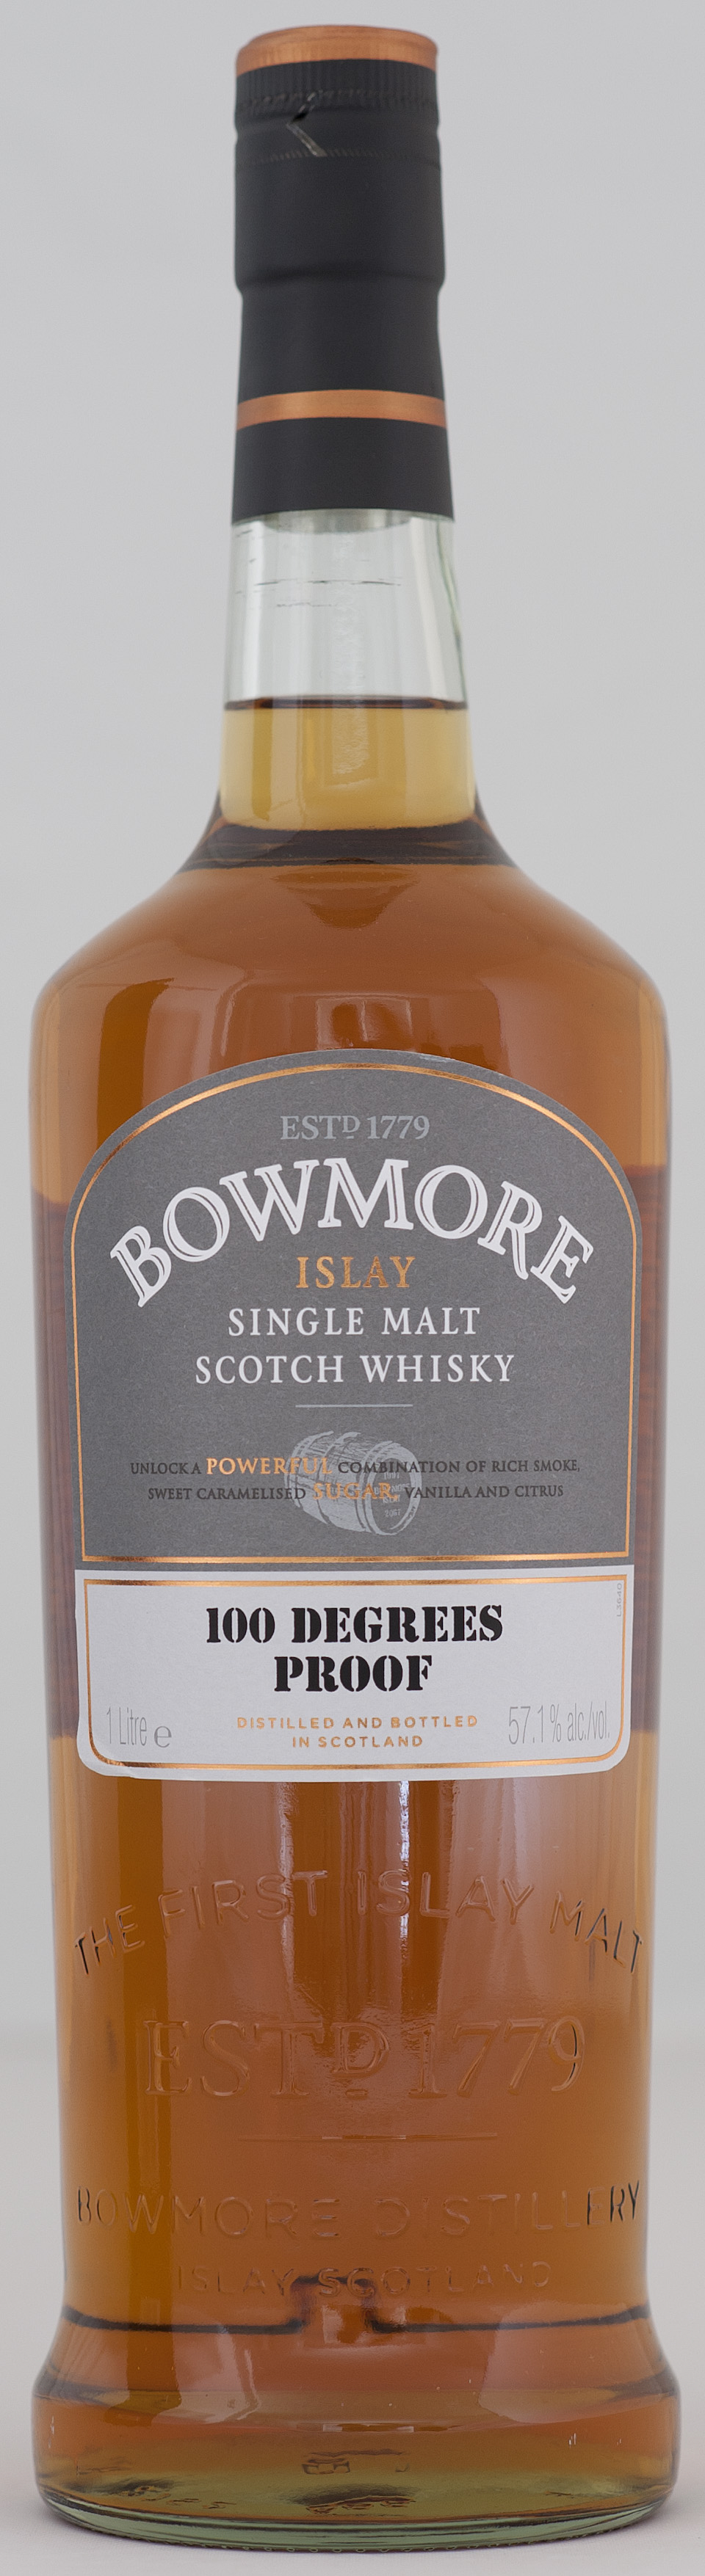 Billede: _DSC5616 Bowmore 100 Degrees Proof - bottle.jpg